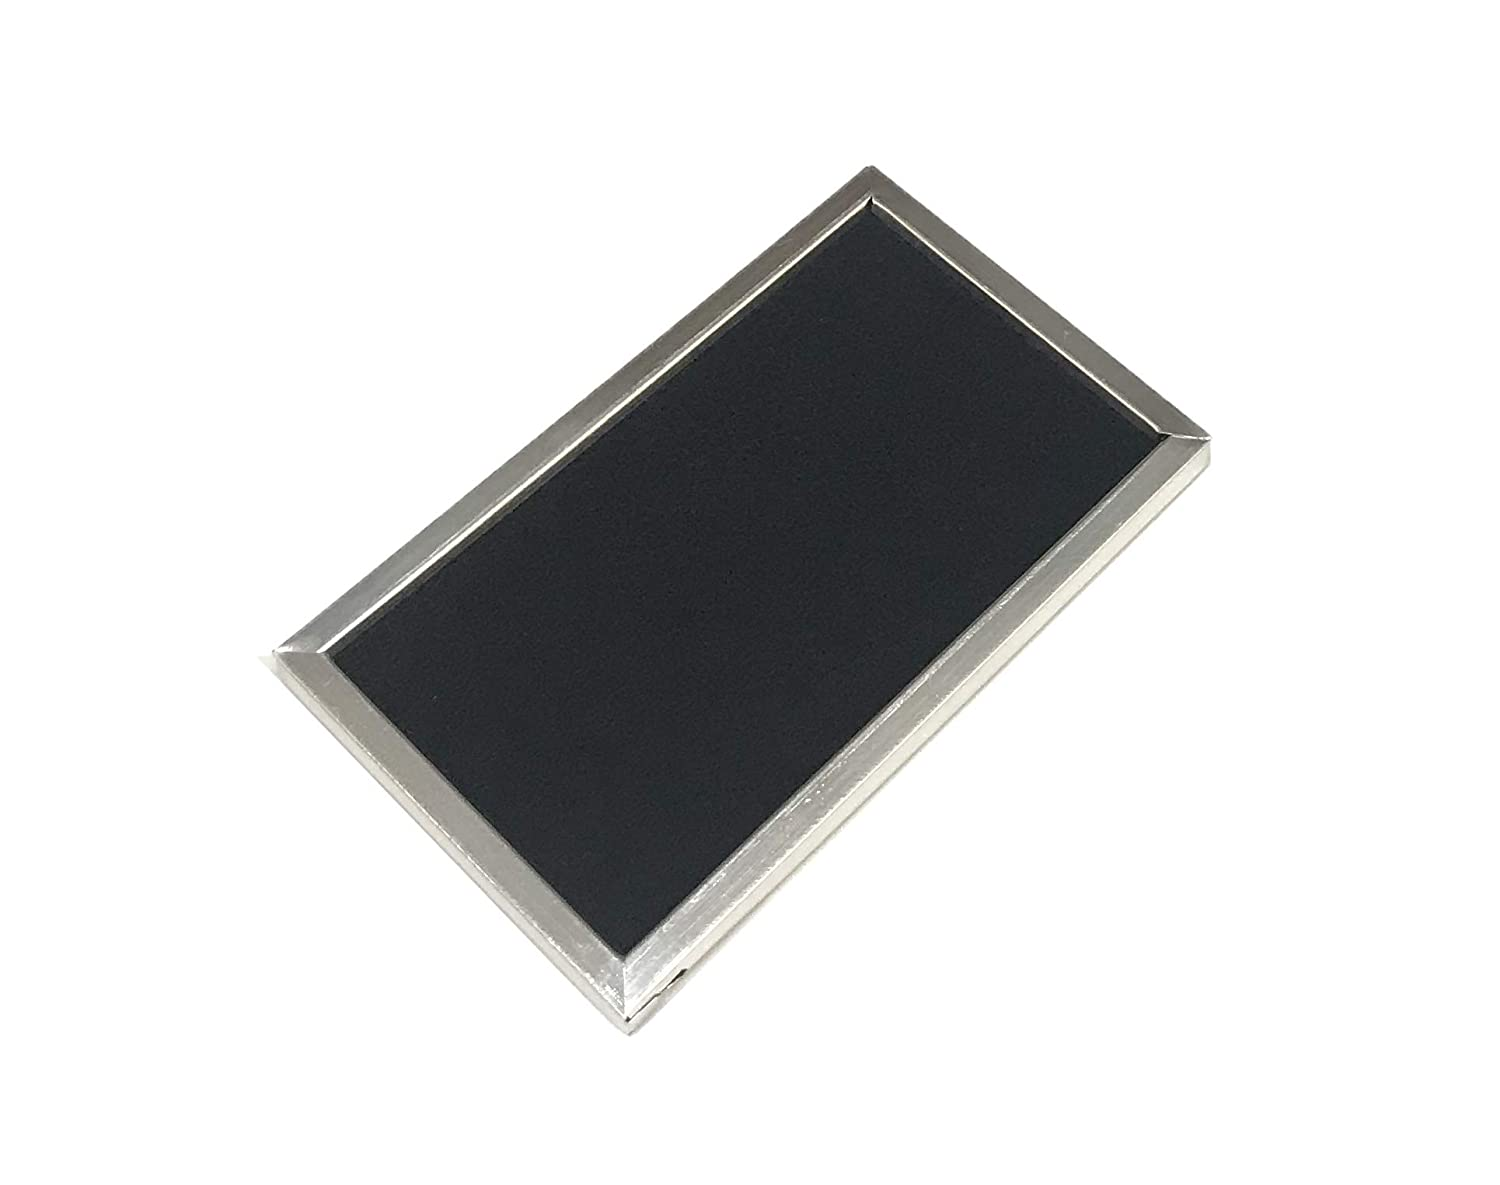 OEM Samsung Microwave CHARCOAL Filter Shipped With ME16K3000AS, ME16K3000AS/AA, ME16K3000AS/AC, ME16K3000AW, ME16K3000AW/AA, ME16K3000AW/AC